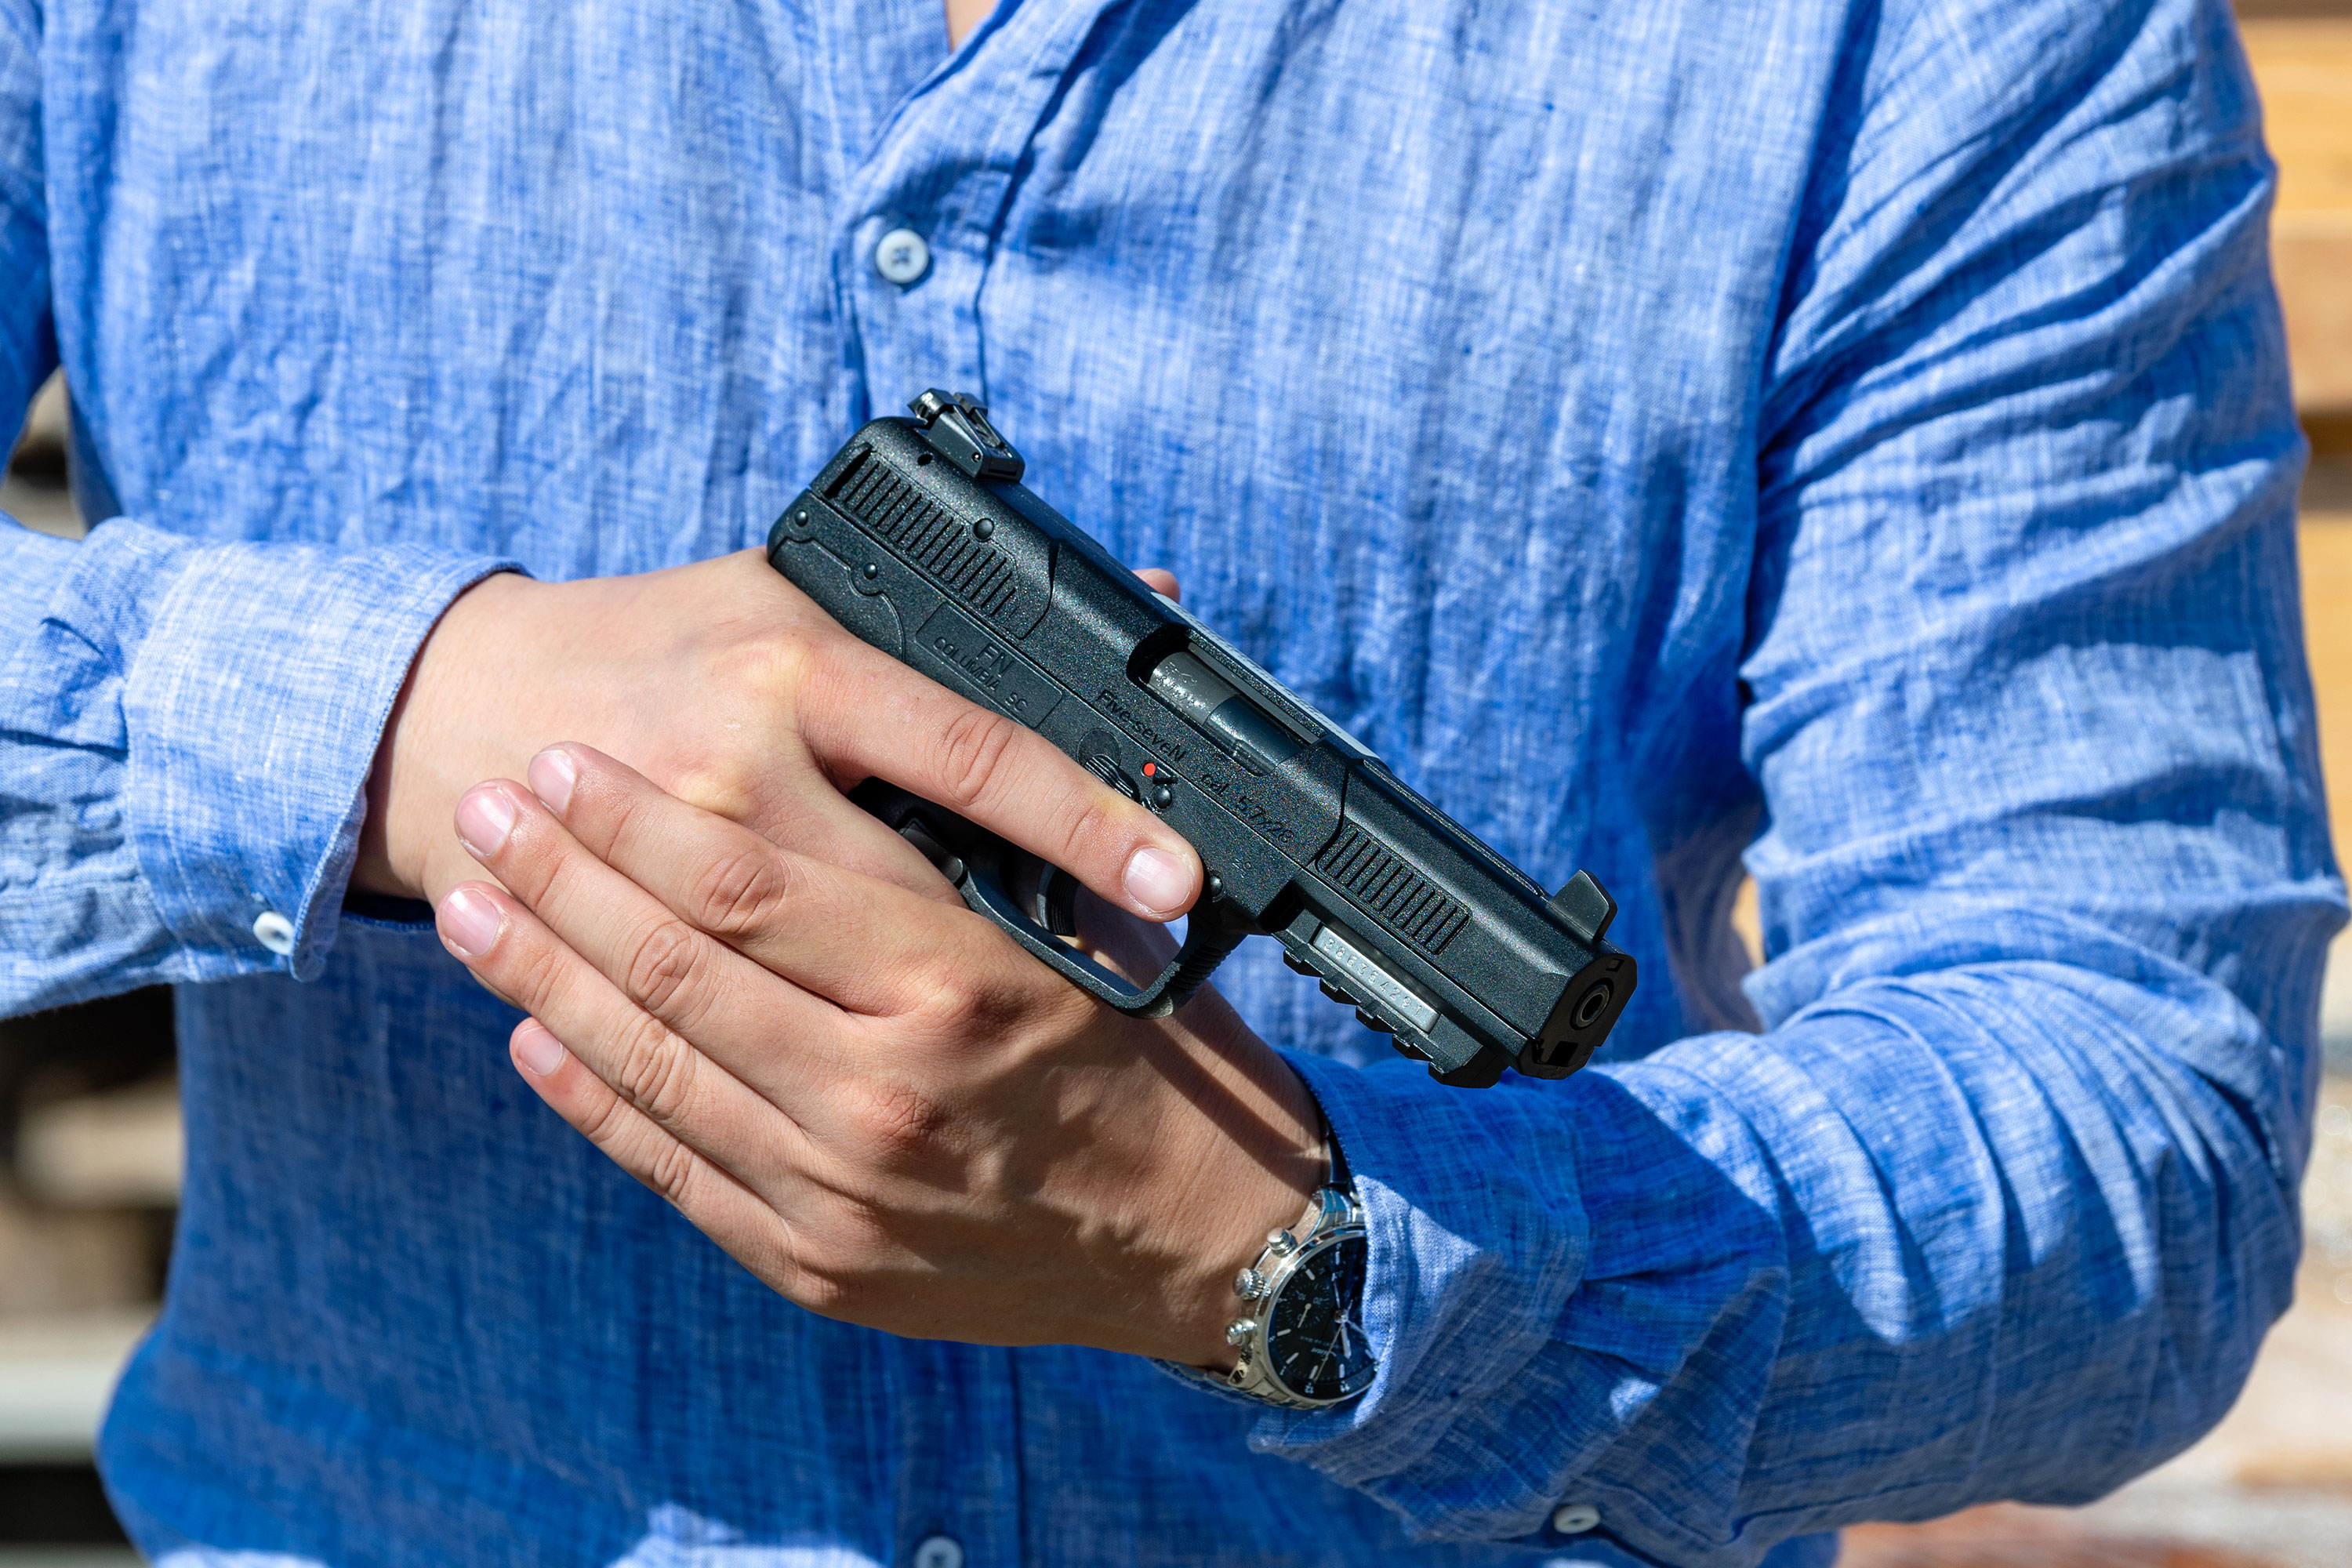 FN Herstal Five-seveN Pistol Officially Available in Canada